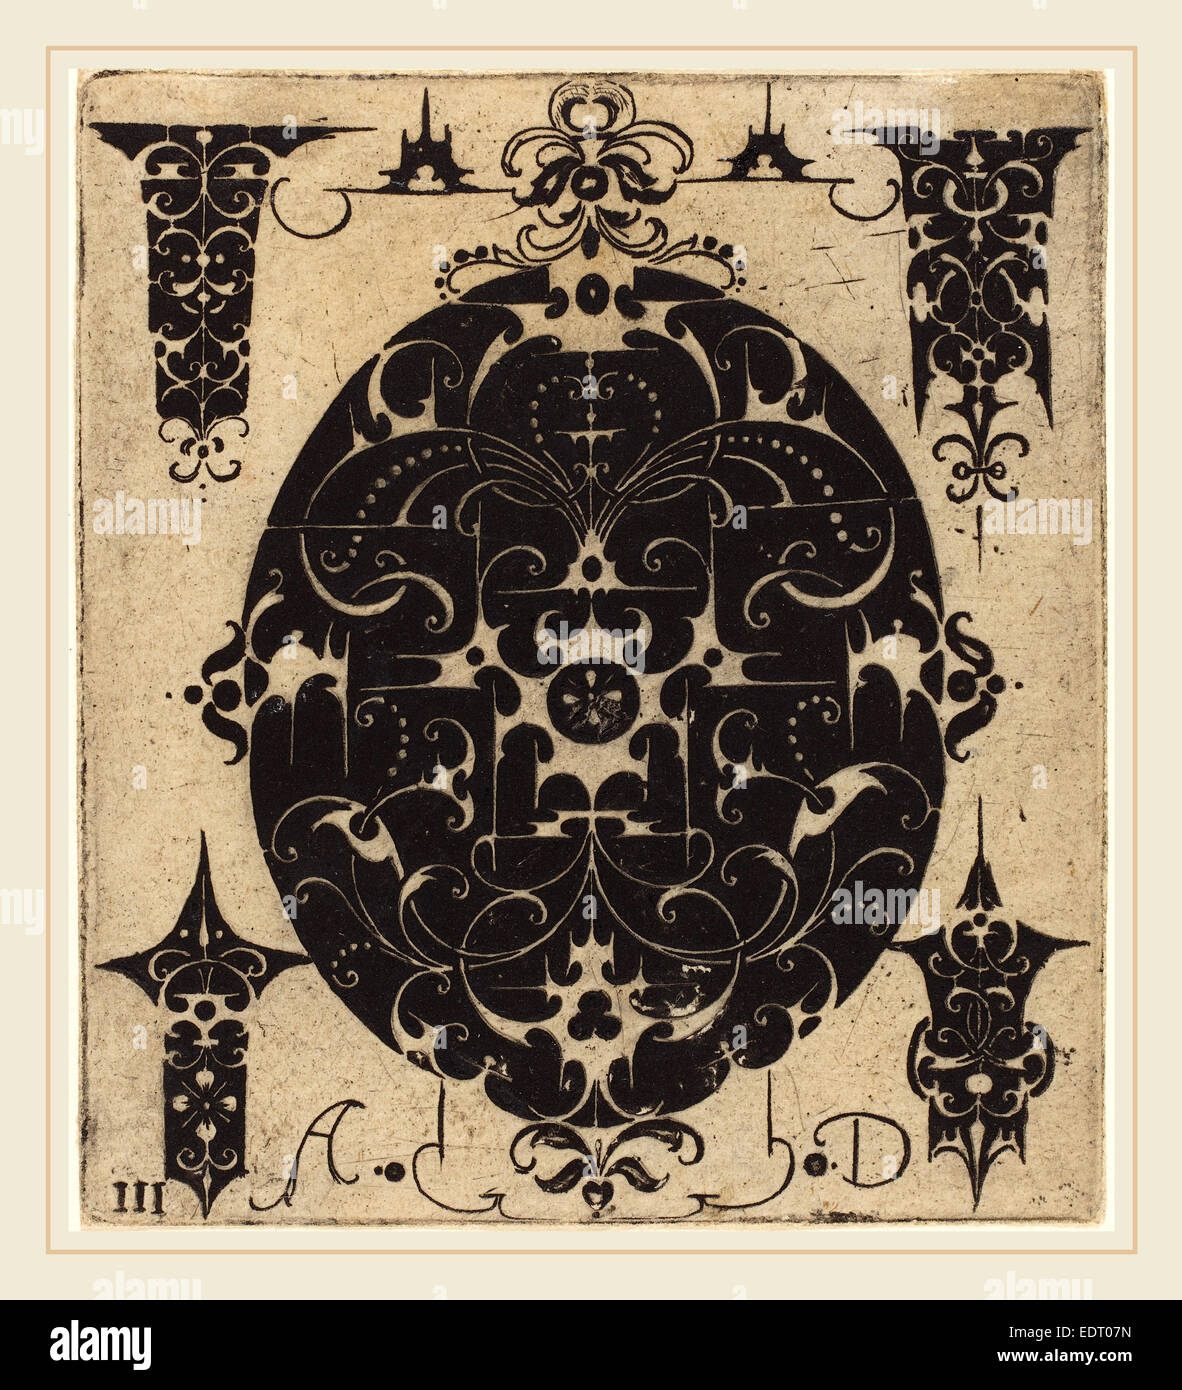 Master AD (German, active late 16th century), Ornament, engraving - Stock Image